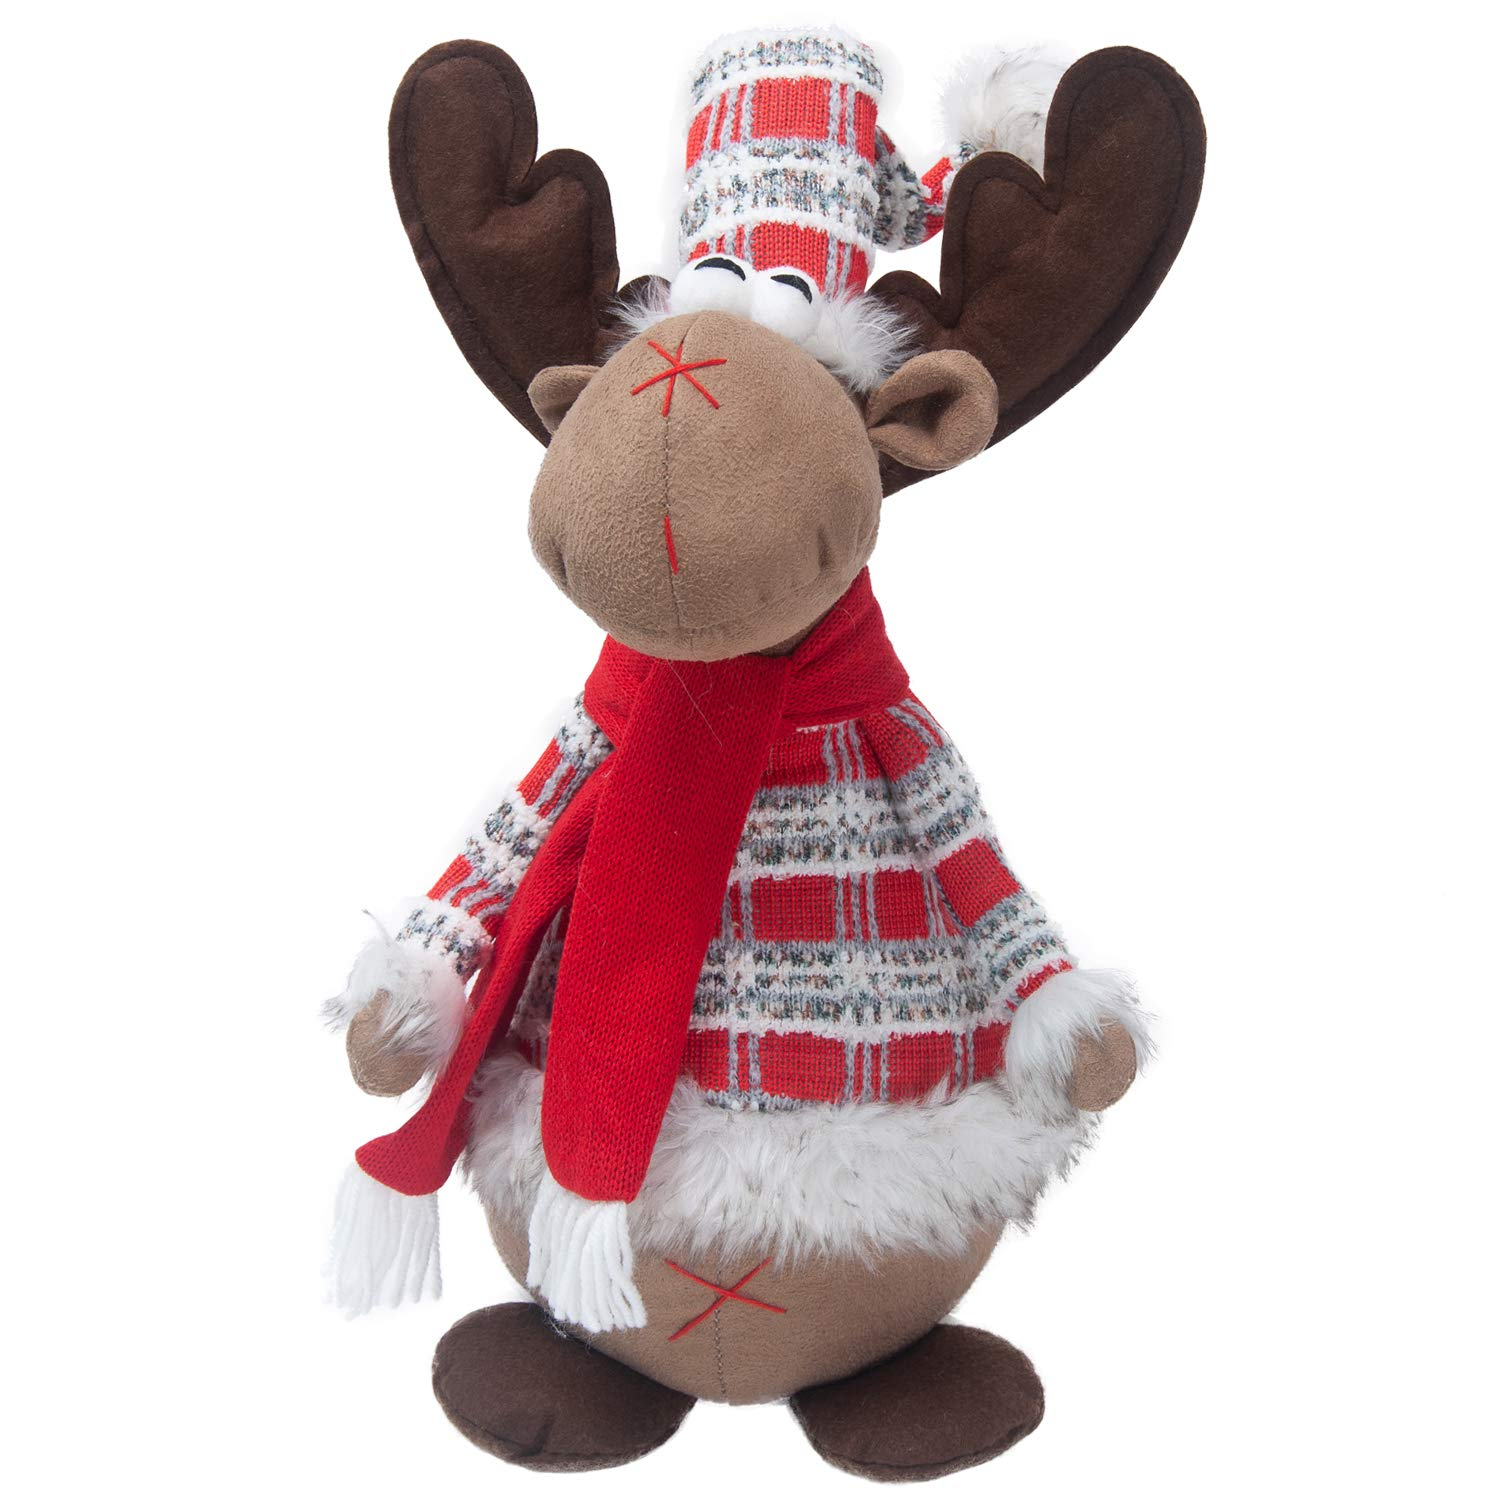 GMOEGEFT Handmade Christmas Reindeer Plush Rudolph Rustic Plaid Moose Stuffed Animal Gift Home Ornaments Holiday Decoration Table Decor, 21''